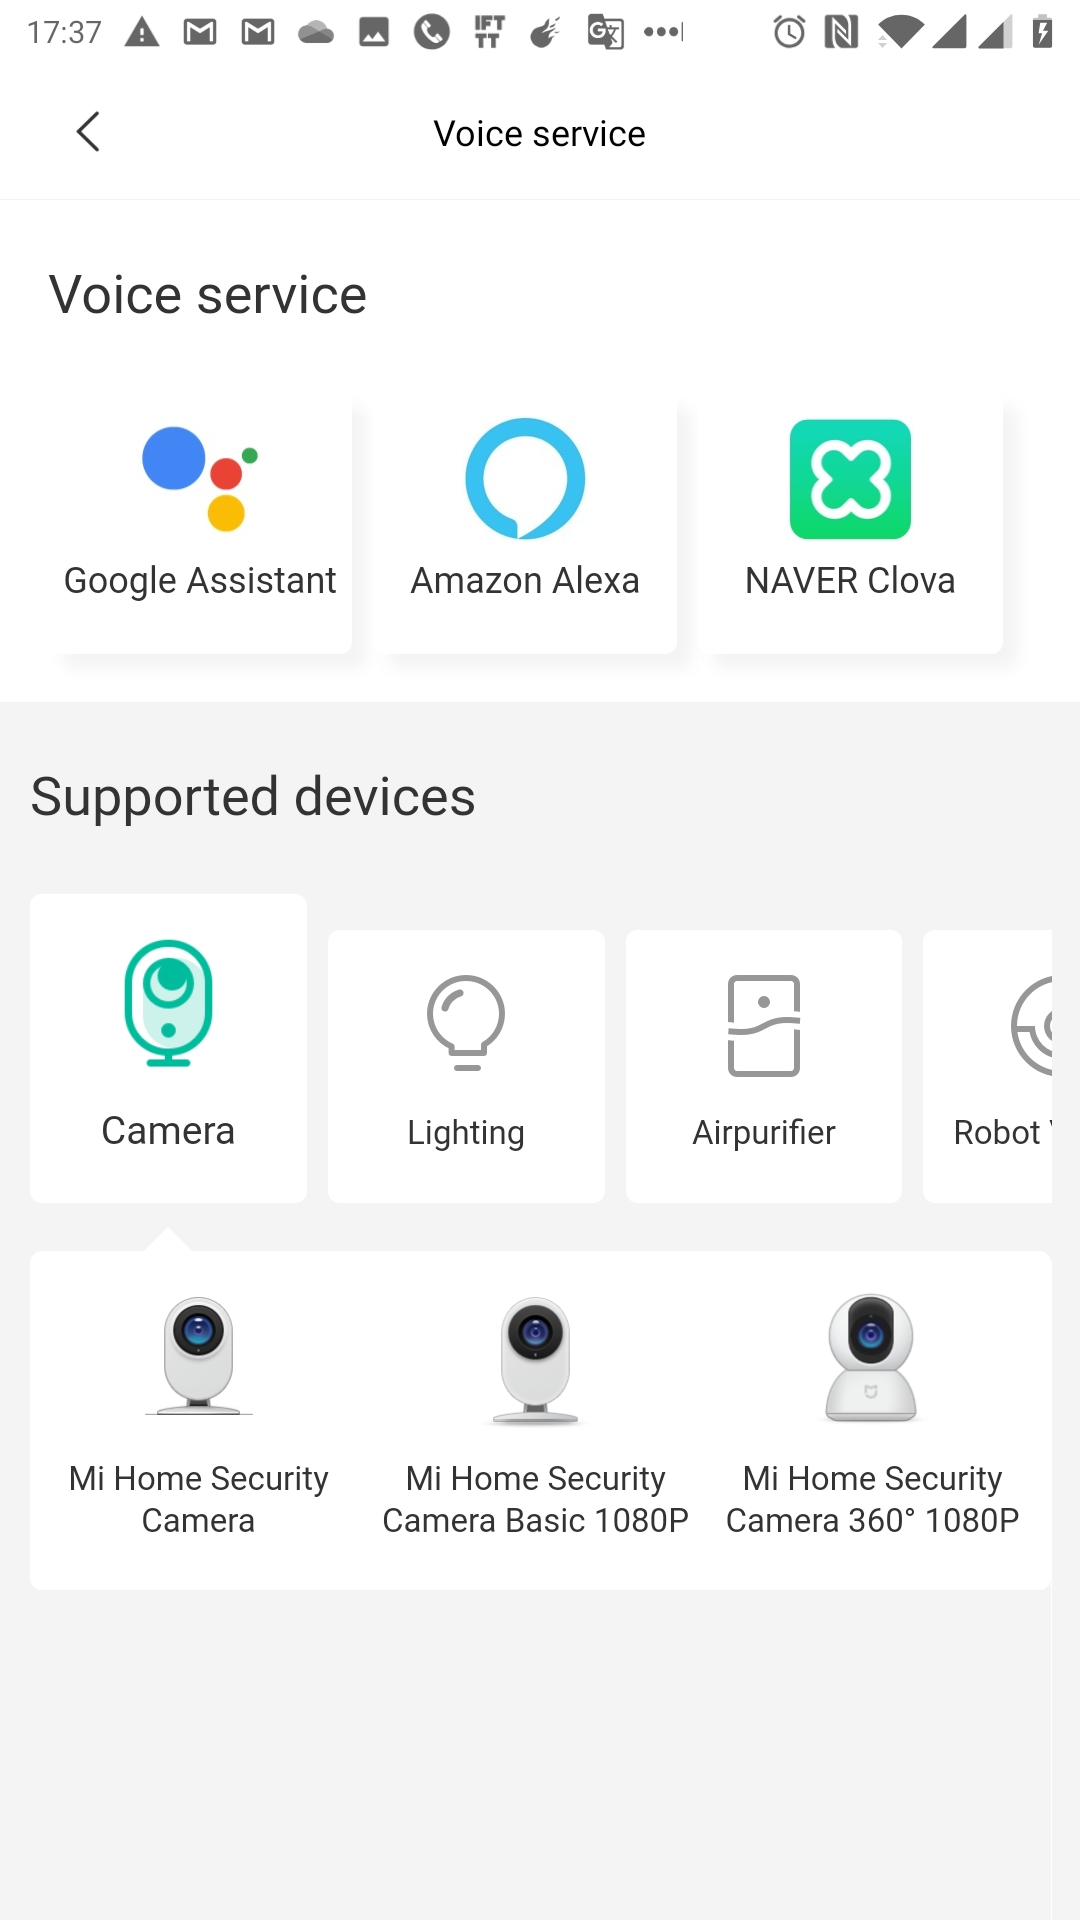 Google Home and IMI Home Security Camera 1080P Global